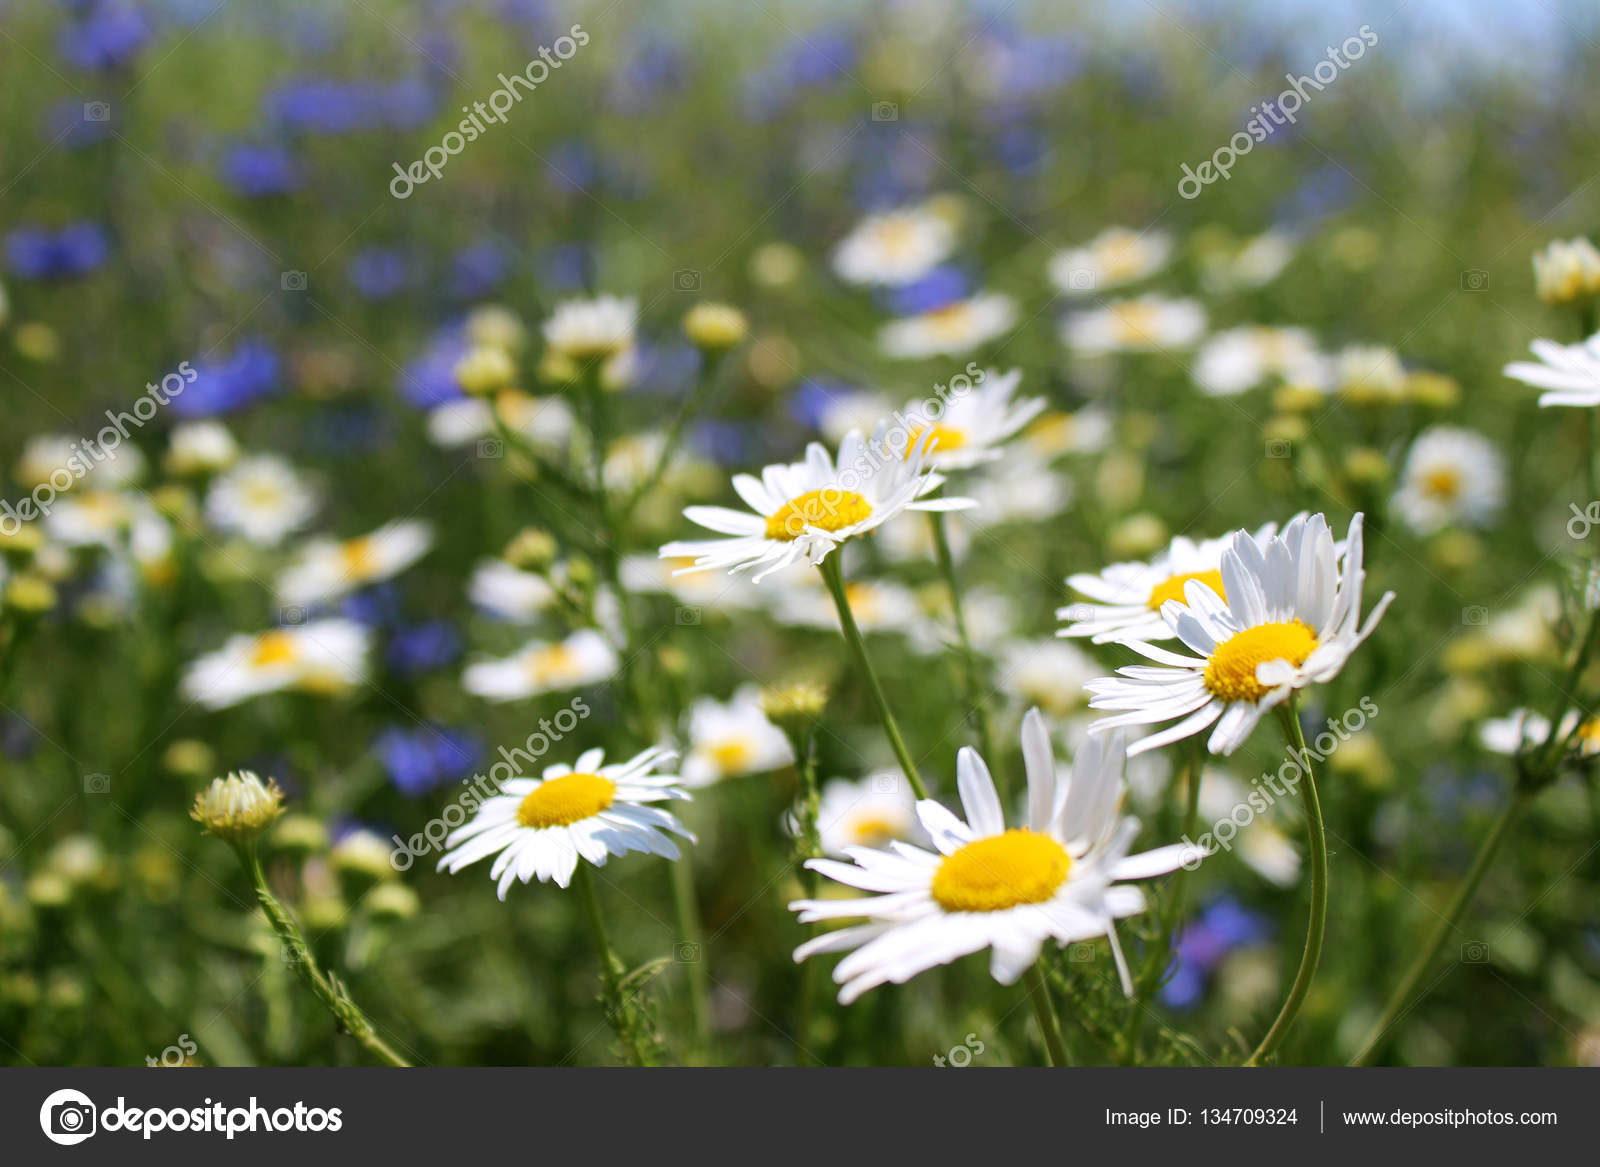 Wild daisies many blurred flowers in the field camomile and co wild daisies many blurred flowers in the field camomile and co stock photo izmirmasajfo Images